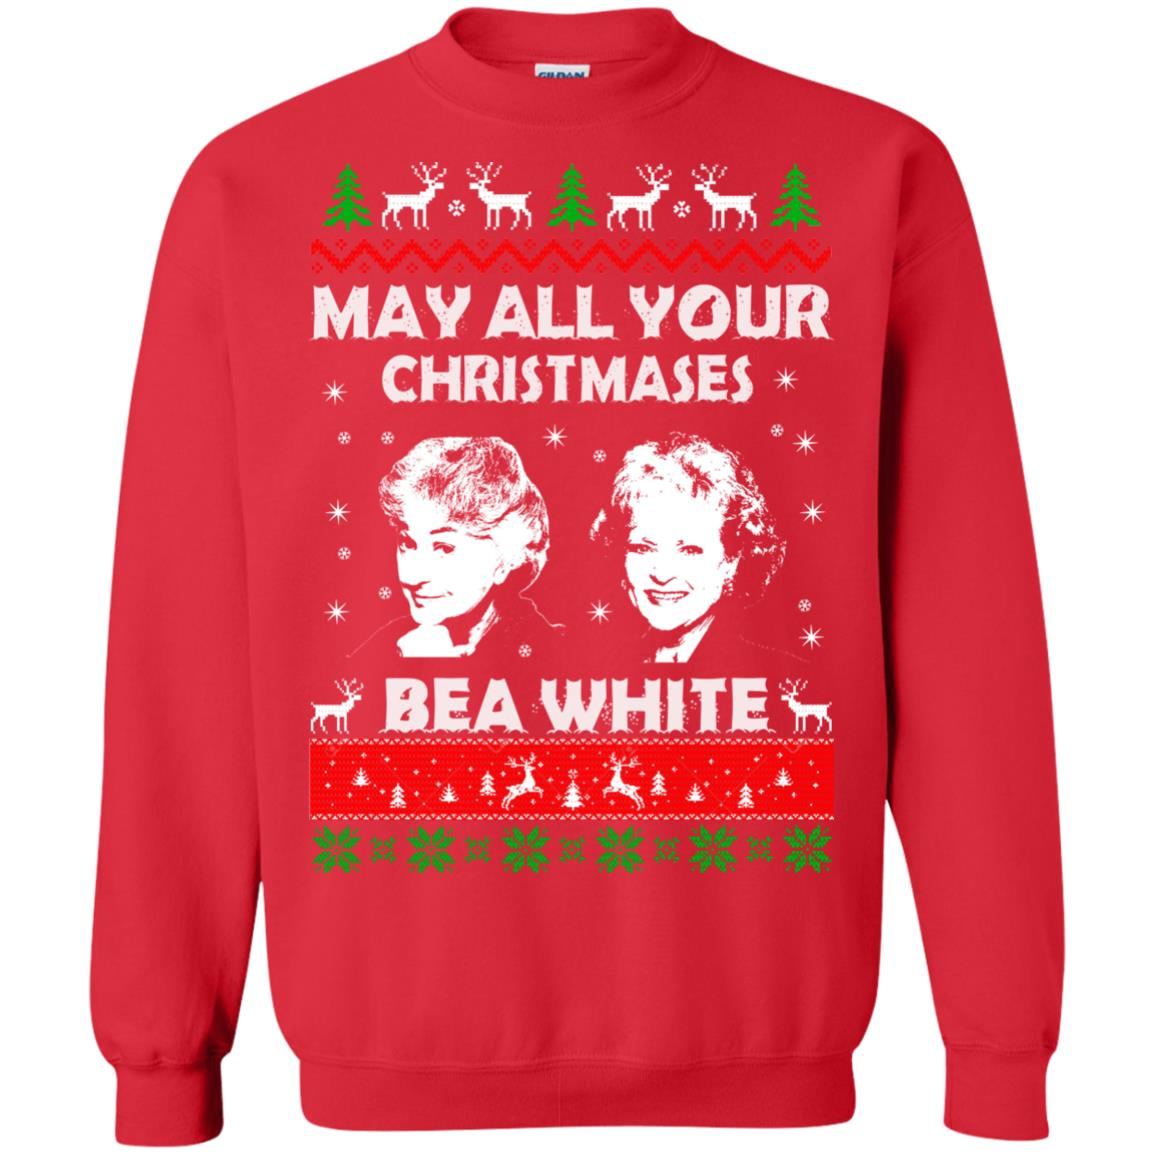 image 731 - May all your Christmases Bea White Ugly Sweater, Hoodie